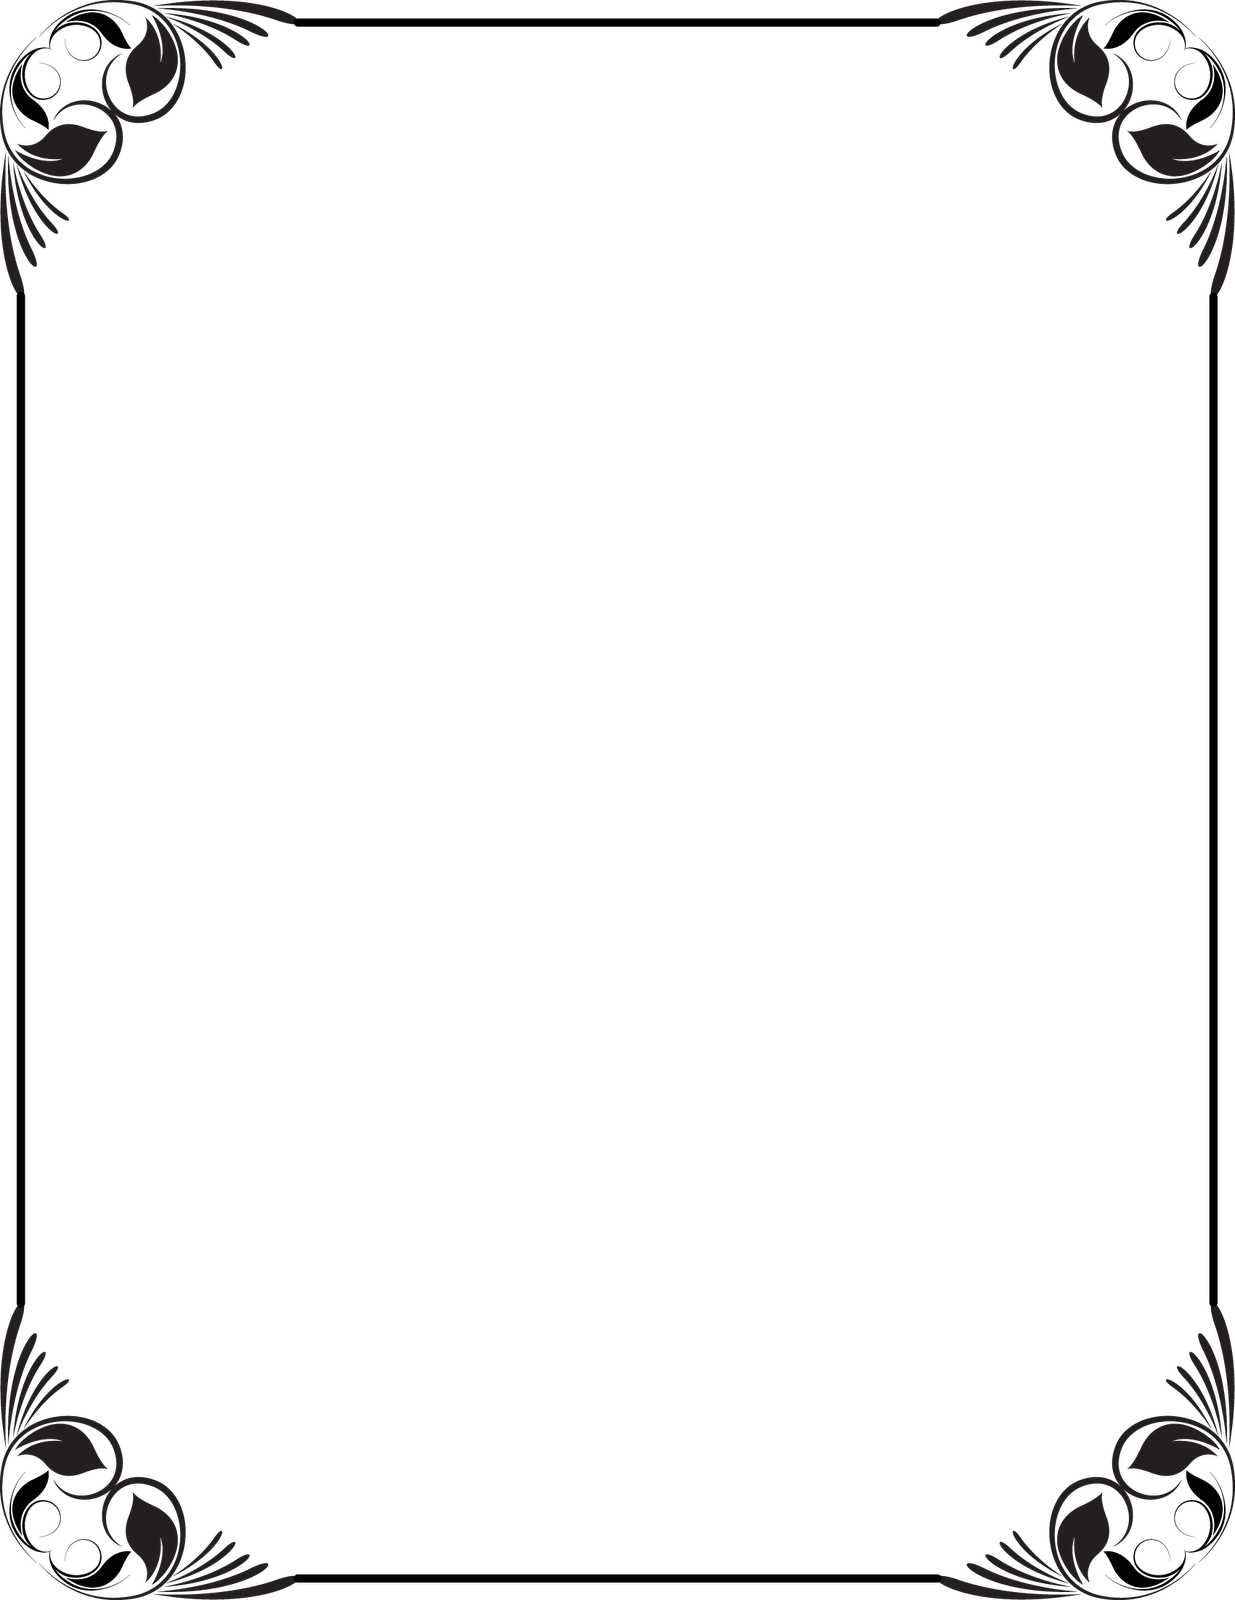 Frames And Borders Black And White Png - ClipArt Best